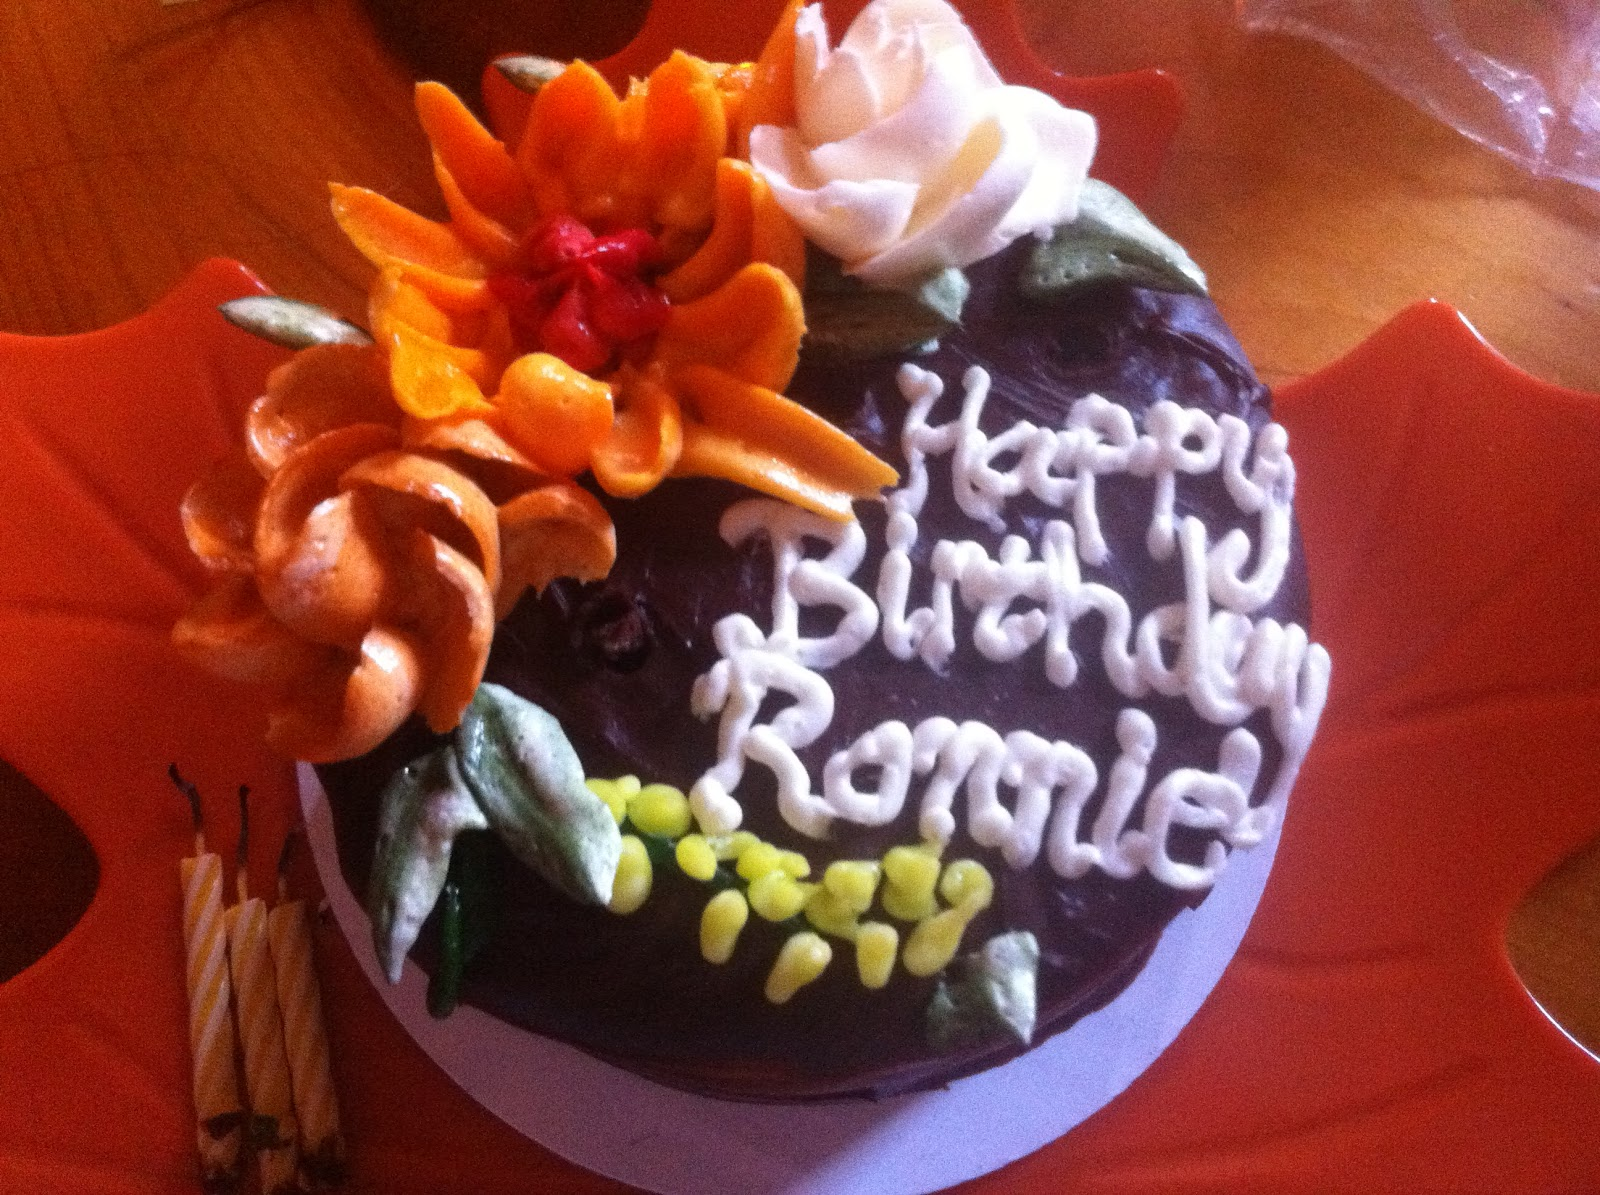 StellaBella: Happy Birthday Big Ronnie!